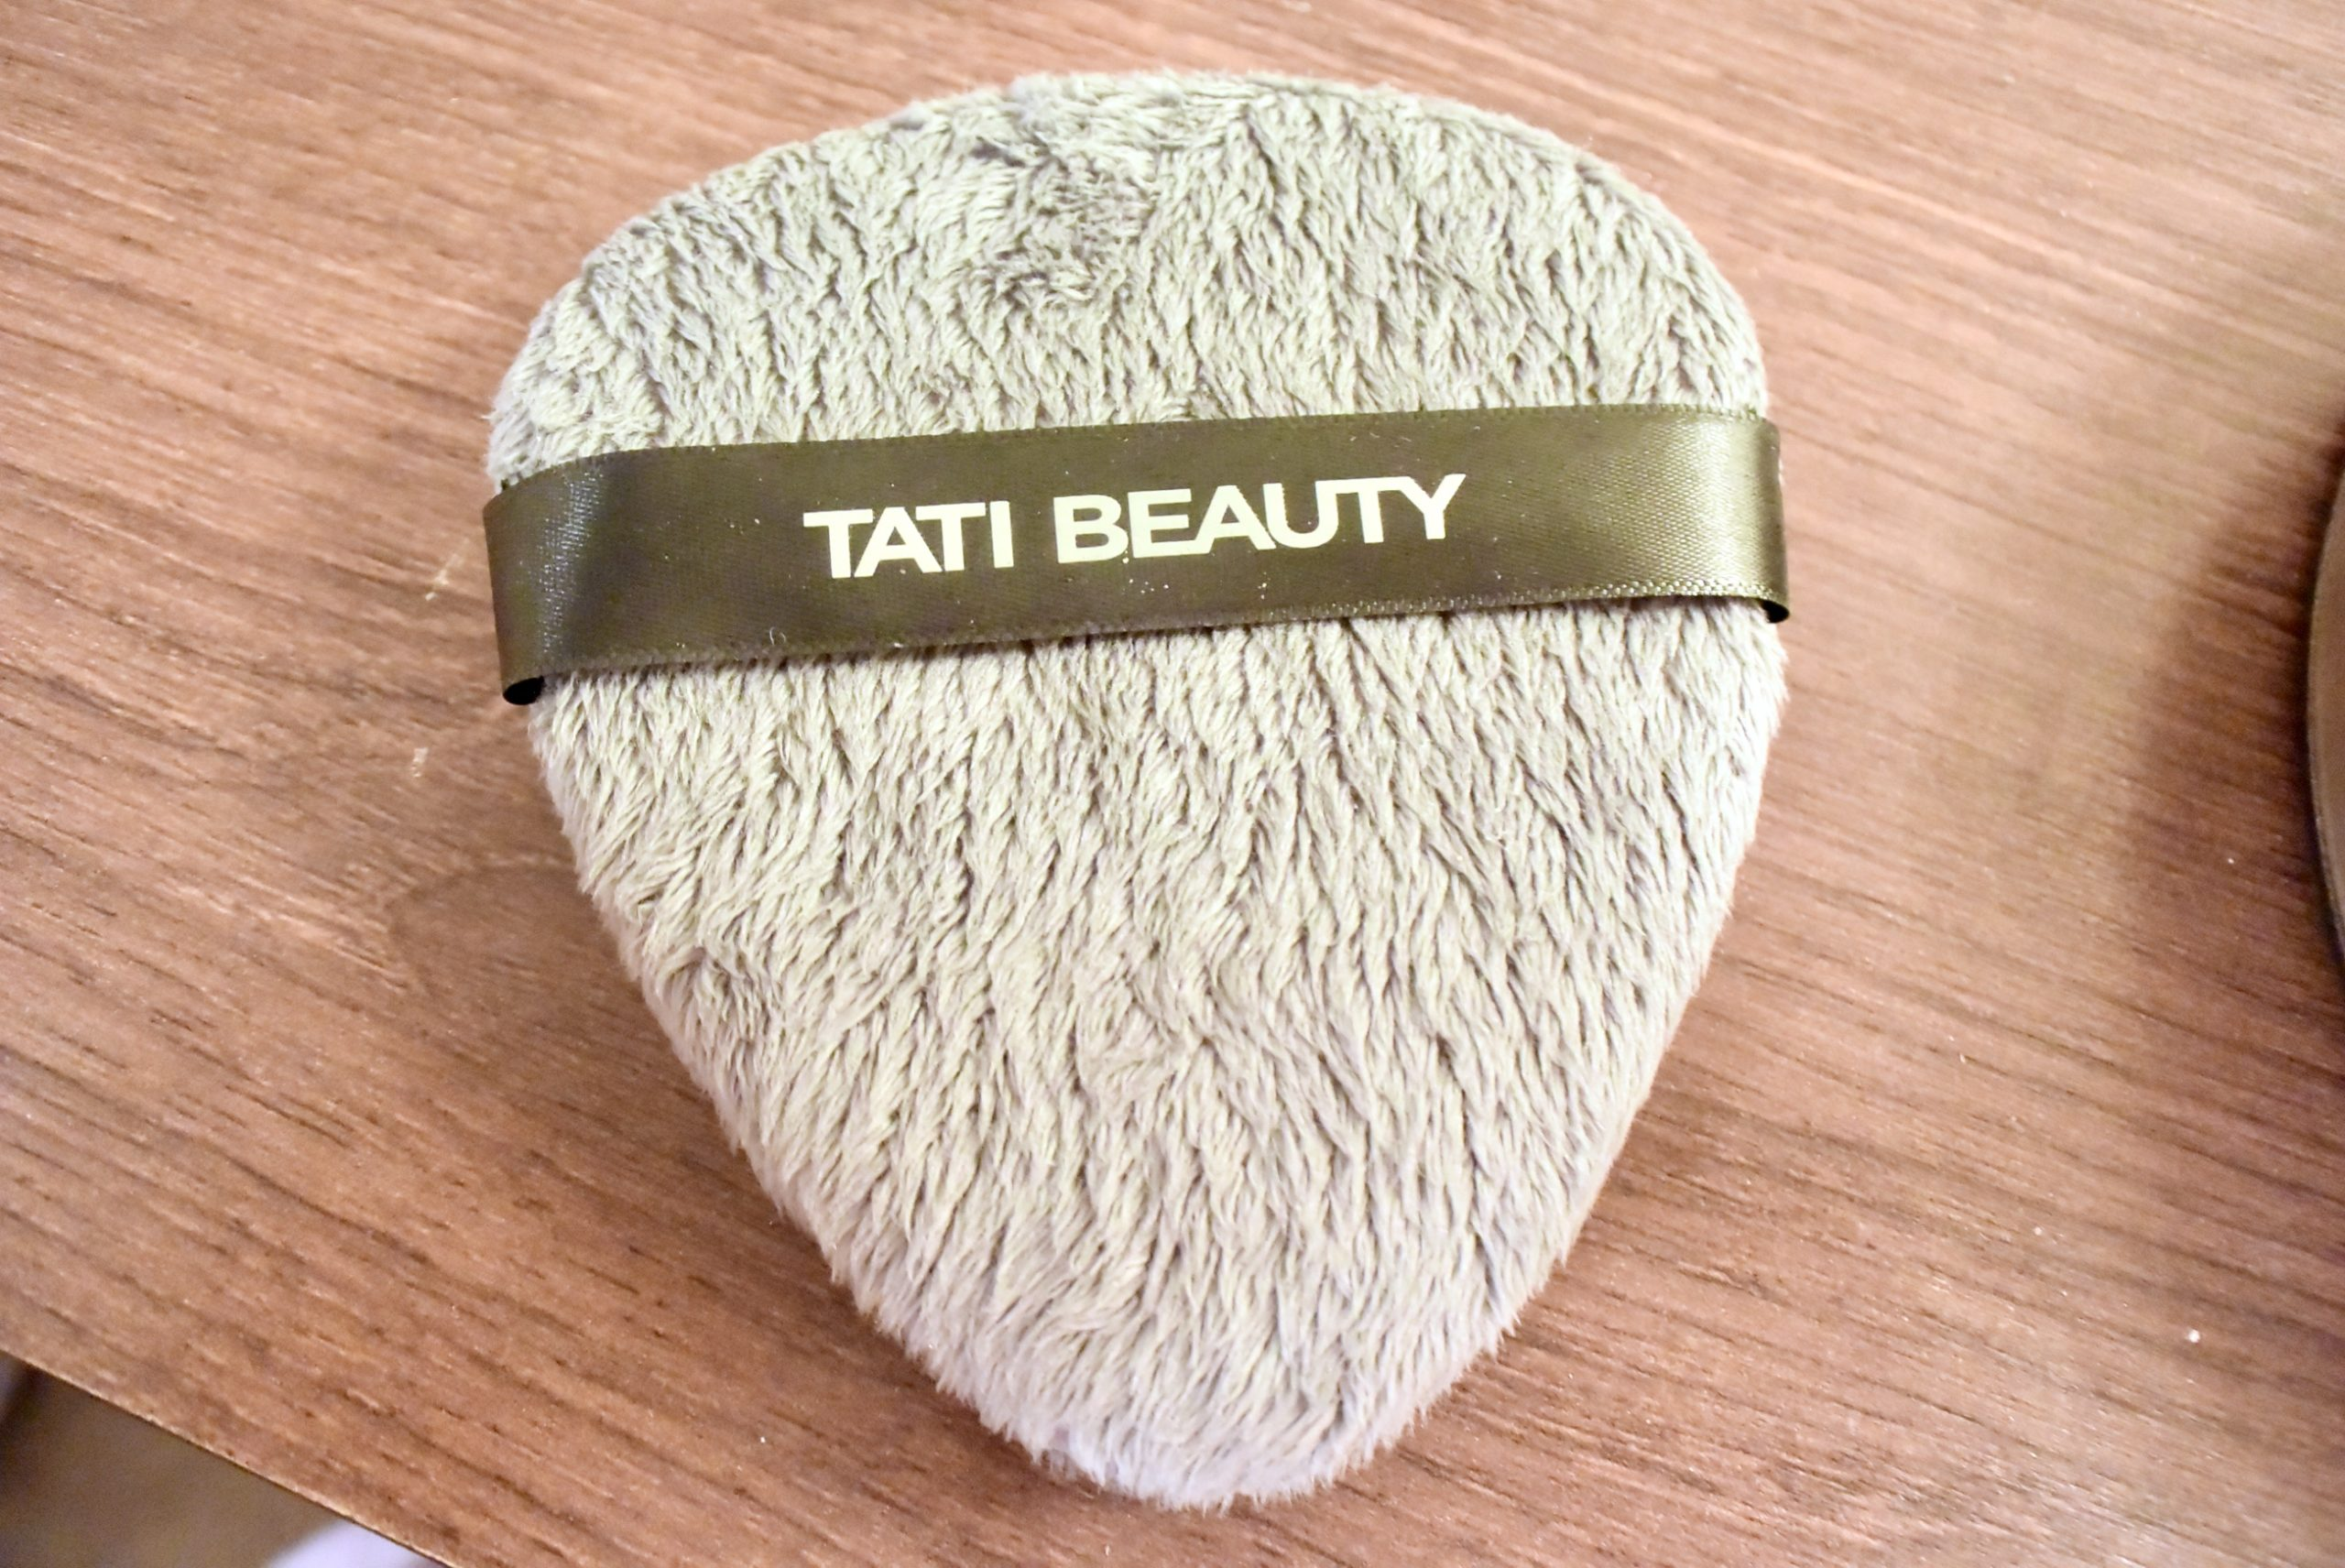 Tati Beauty